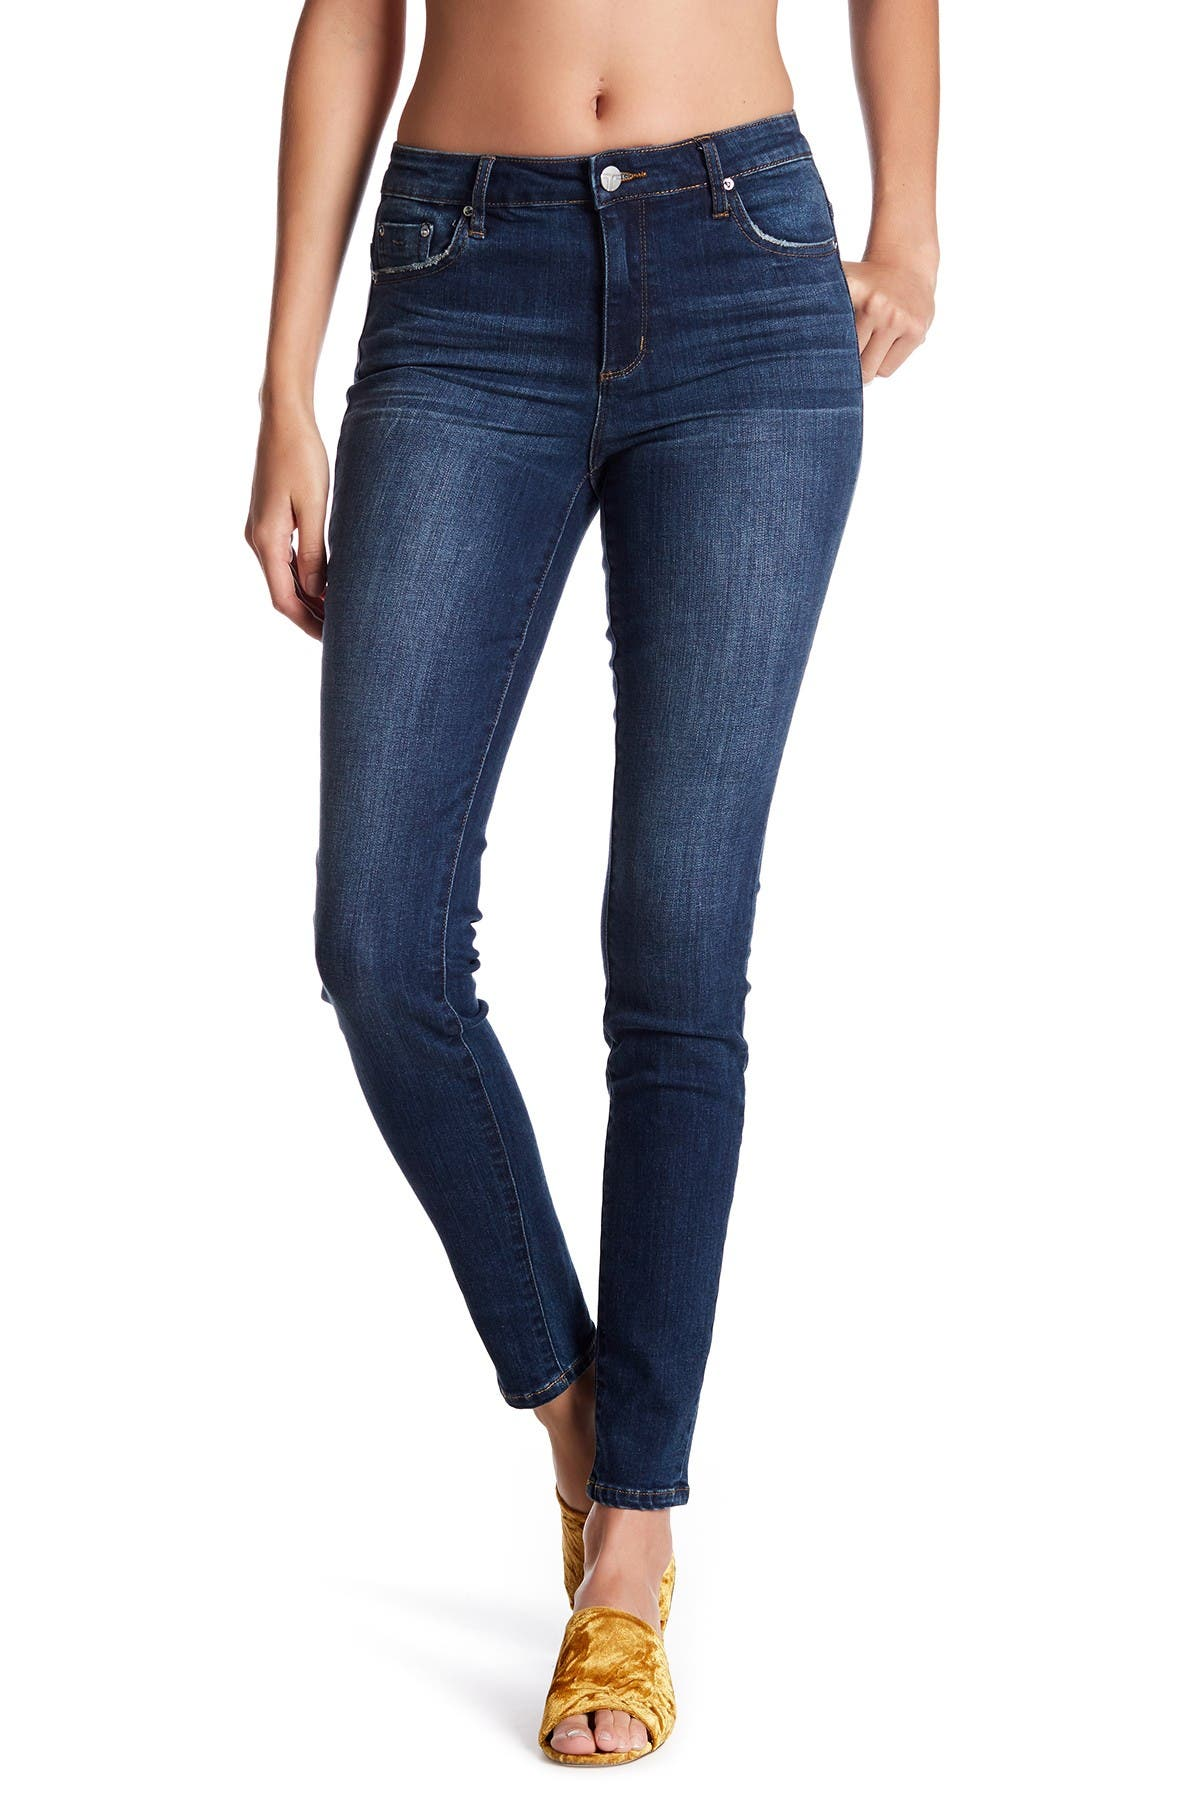 Image of Tractr High Waist Skinny Jeans